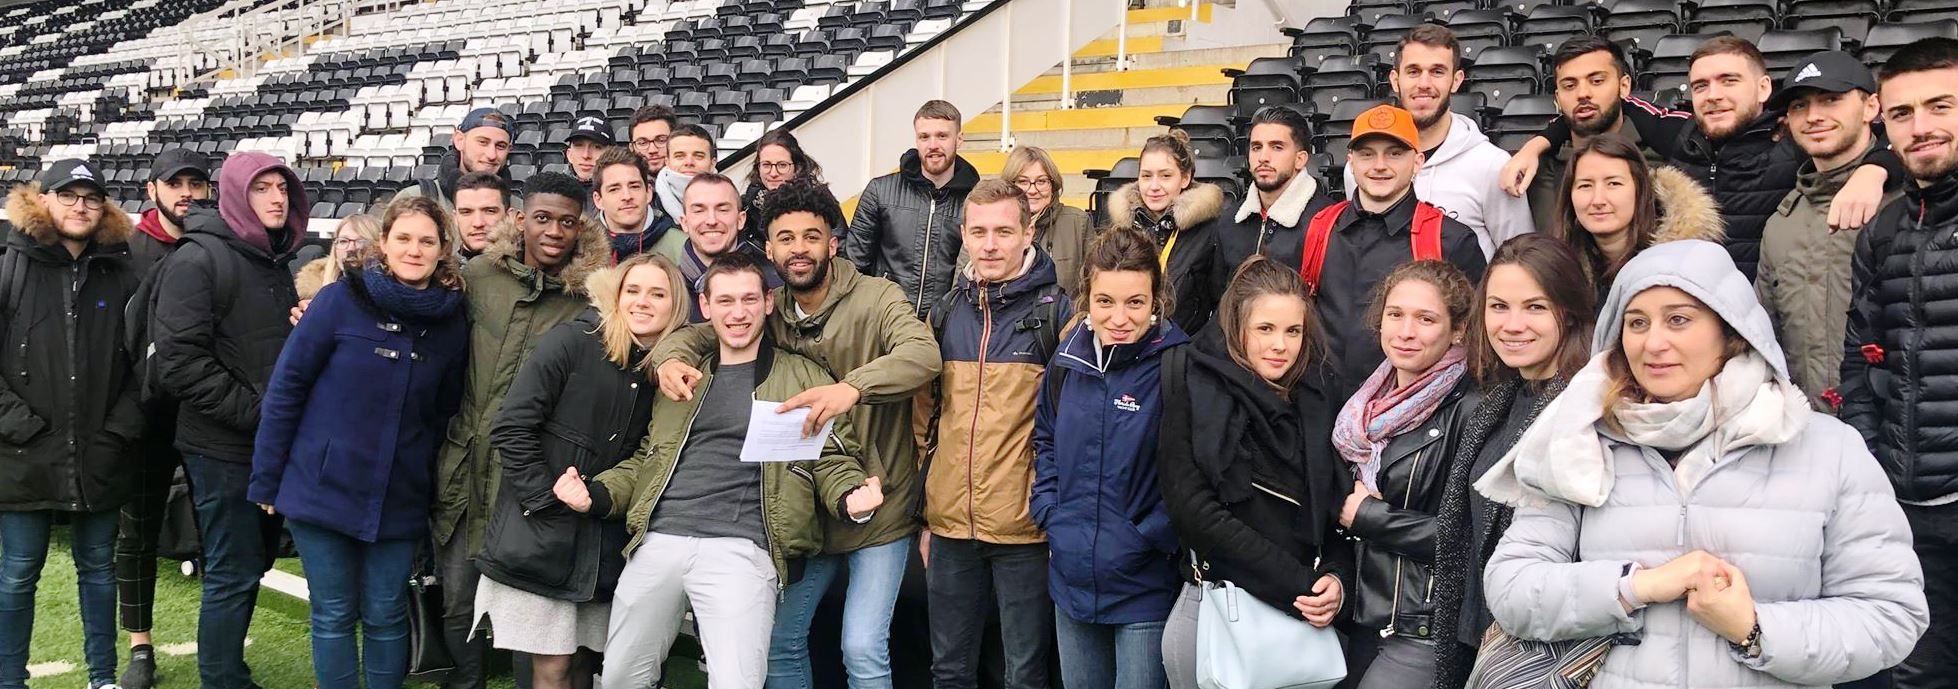 20190408 ILEPS London Fulham Football Club 2